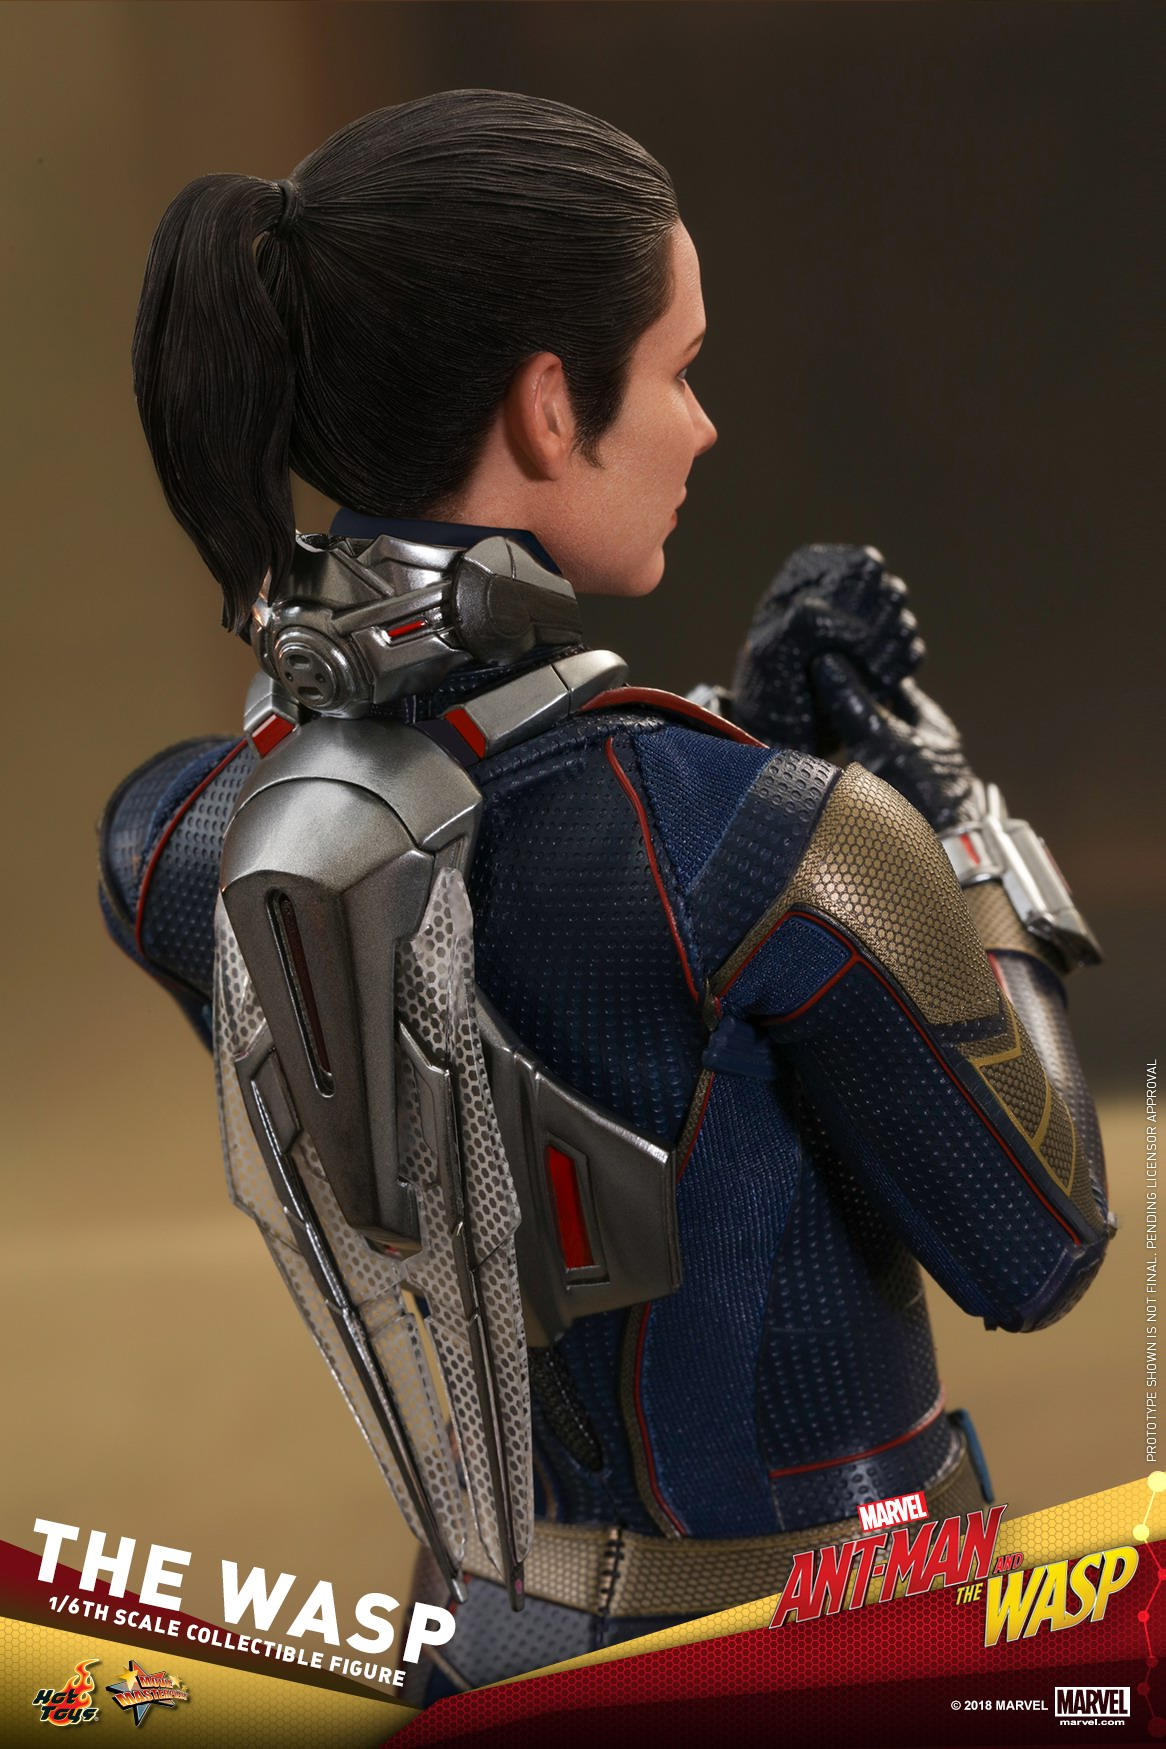 Hot-Toys-Ant-Man-and-The-Wasp-The-Wasp-Collectible-Figure_PR22.jpg